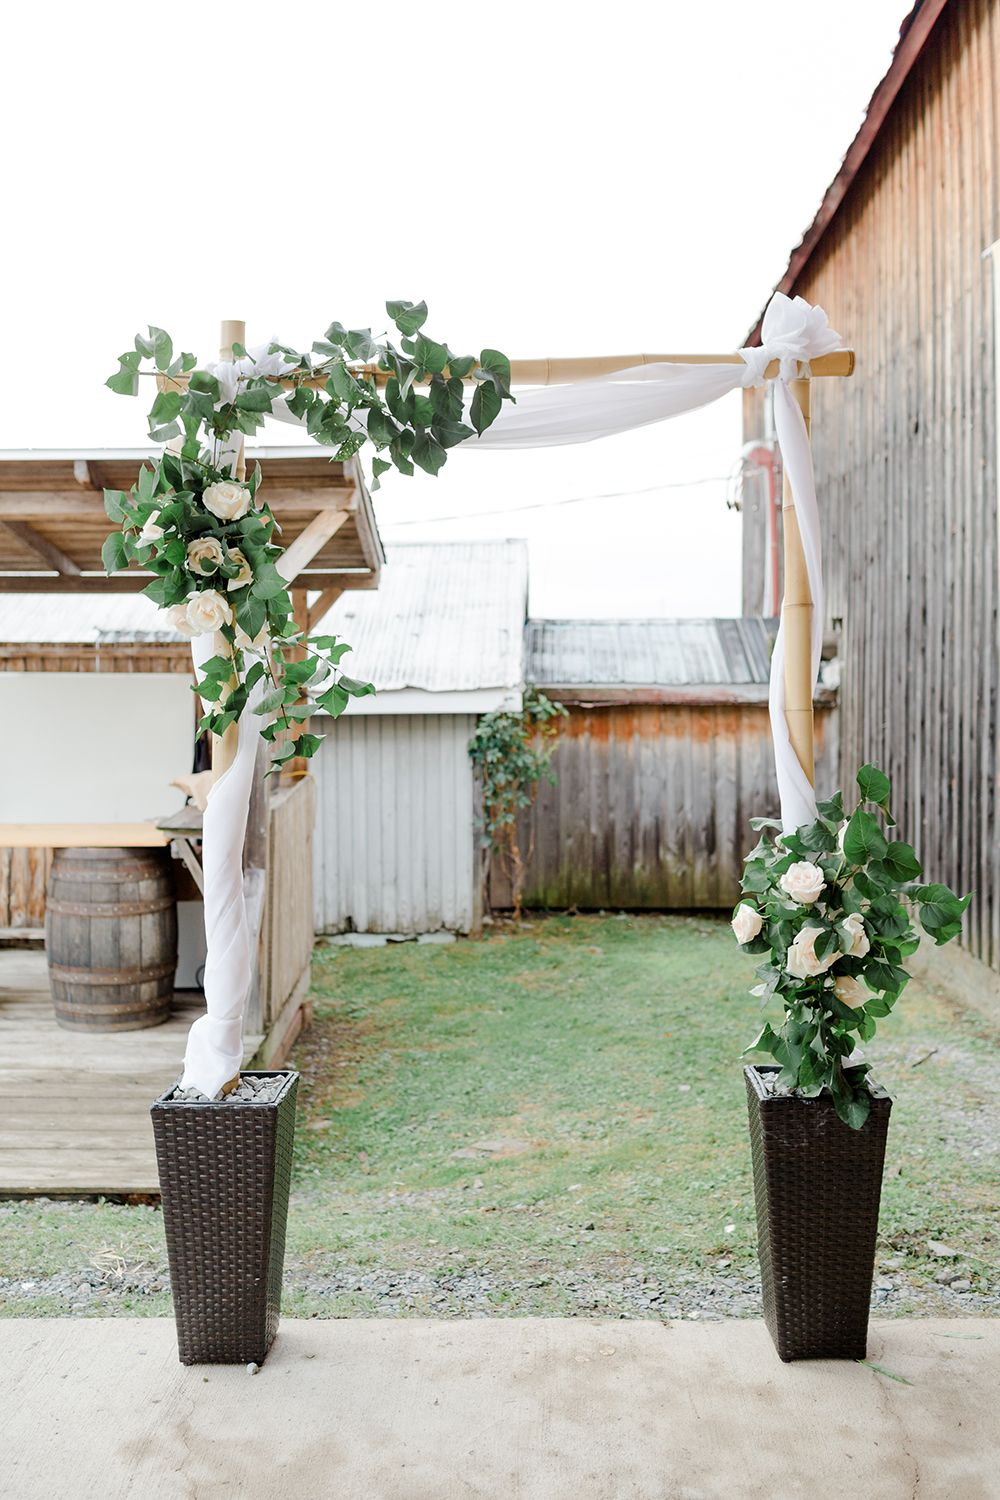 A Diy Bamboo Wedding Arch For Less Than 150 Tutorial Looks Quite Easy